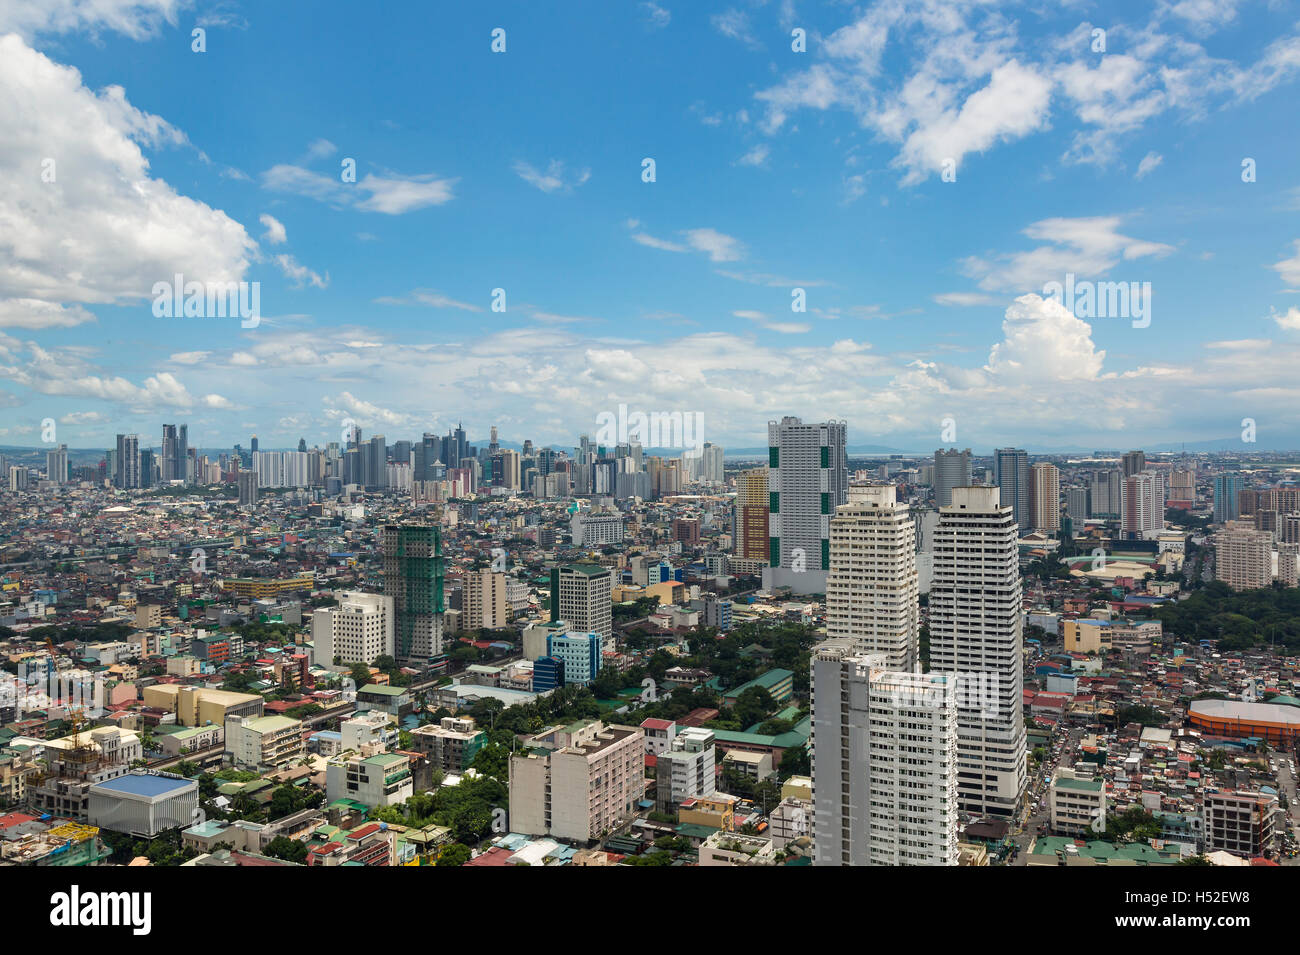 Manila, Philippines. September 2016. Aerial view of the neighborhood of Malate in the Philippines capital city. - Stock Image